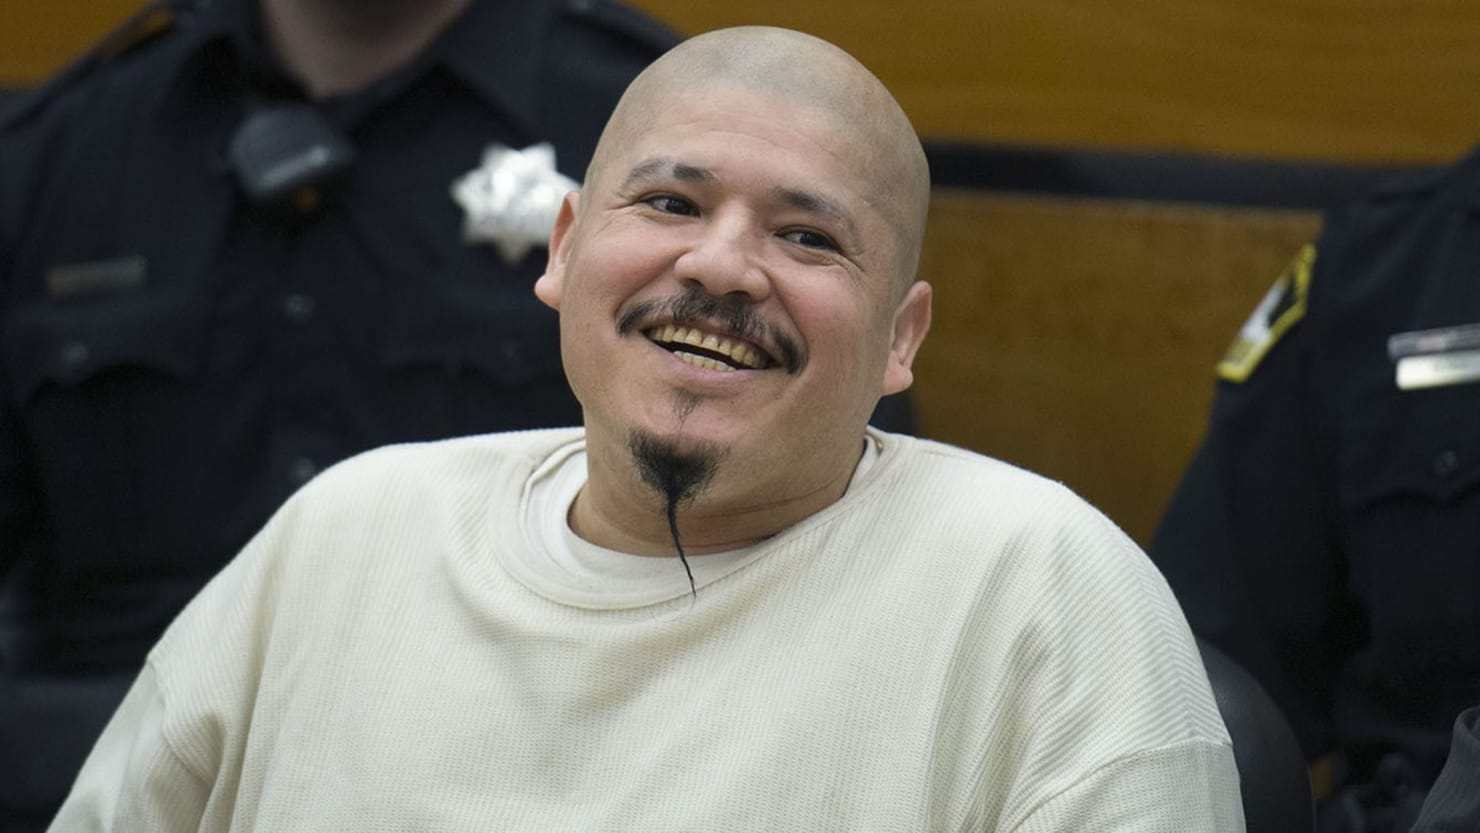 Luis Bracamontes, Cop-Killer in Trump's Twitter Video, Actually Came Back to U.S. Under Bush